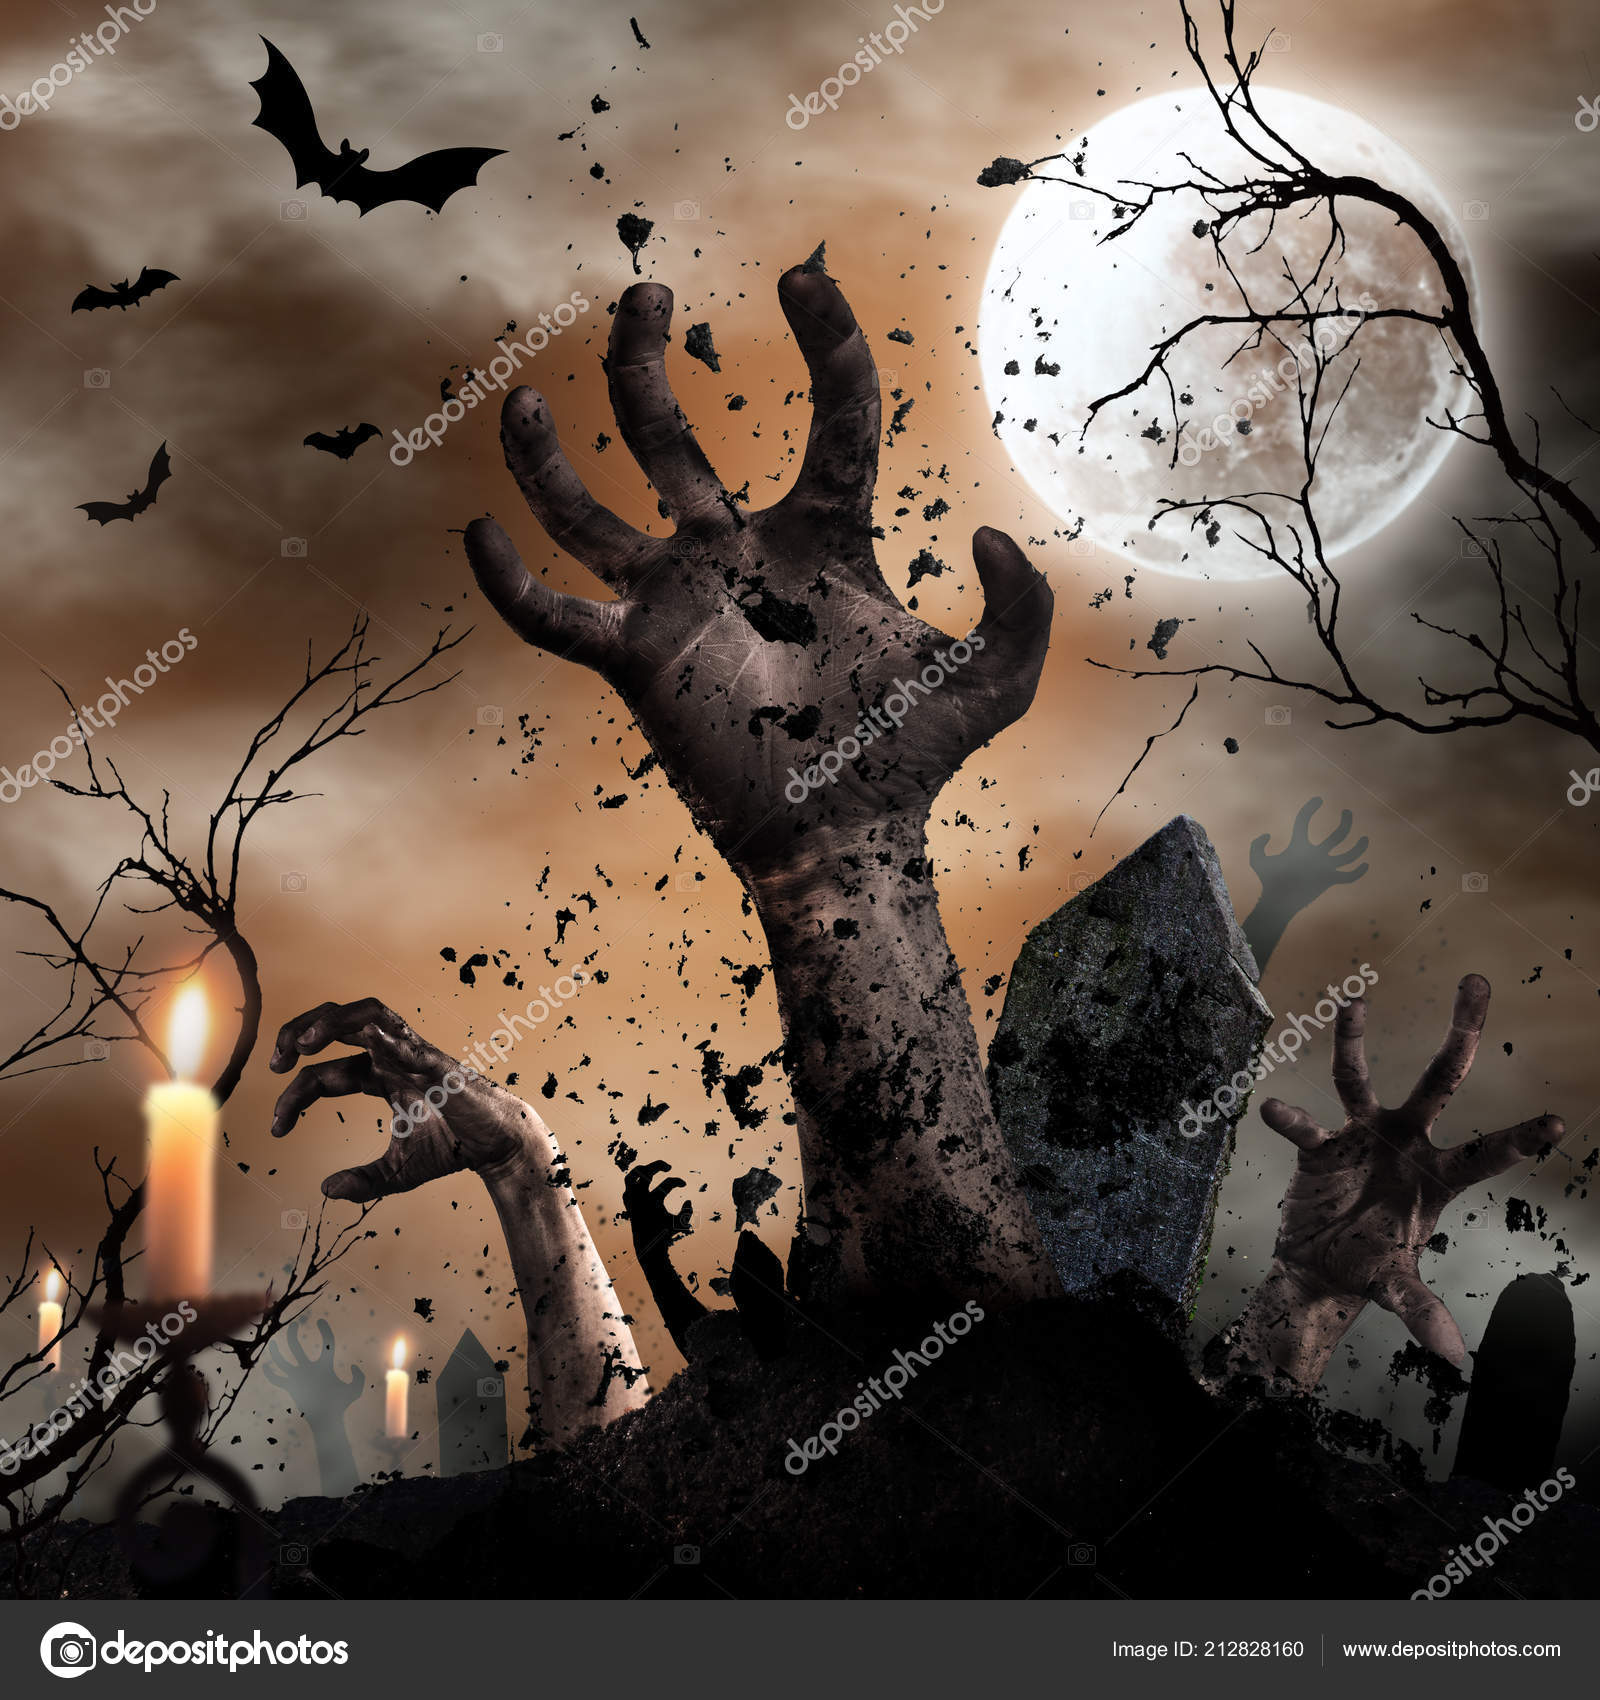 scary halloween background with zombie hands. — stock photo © kesu01